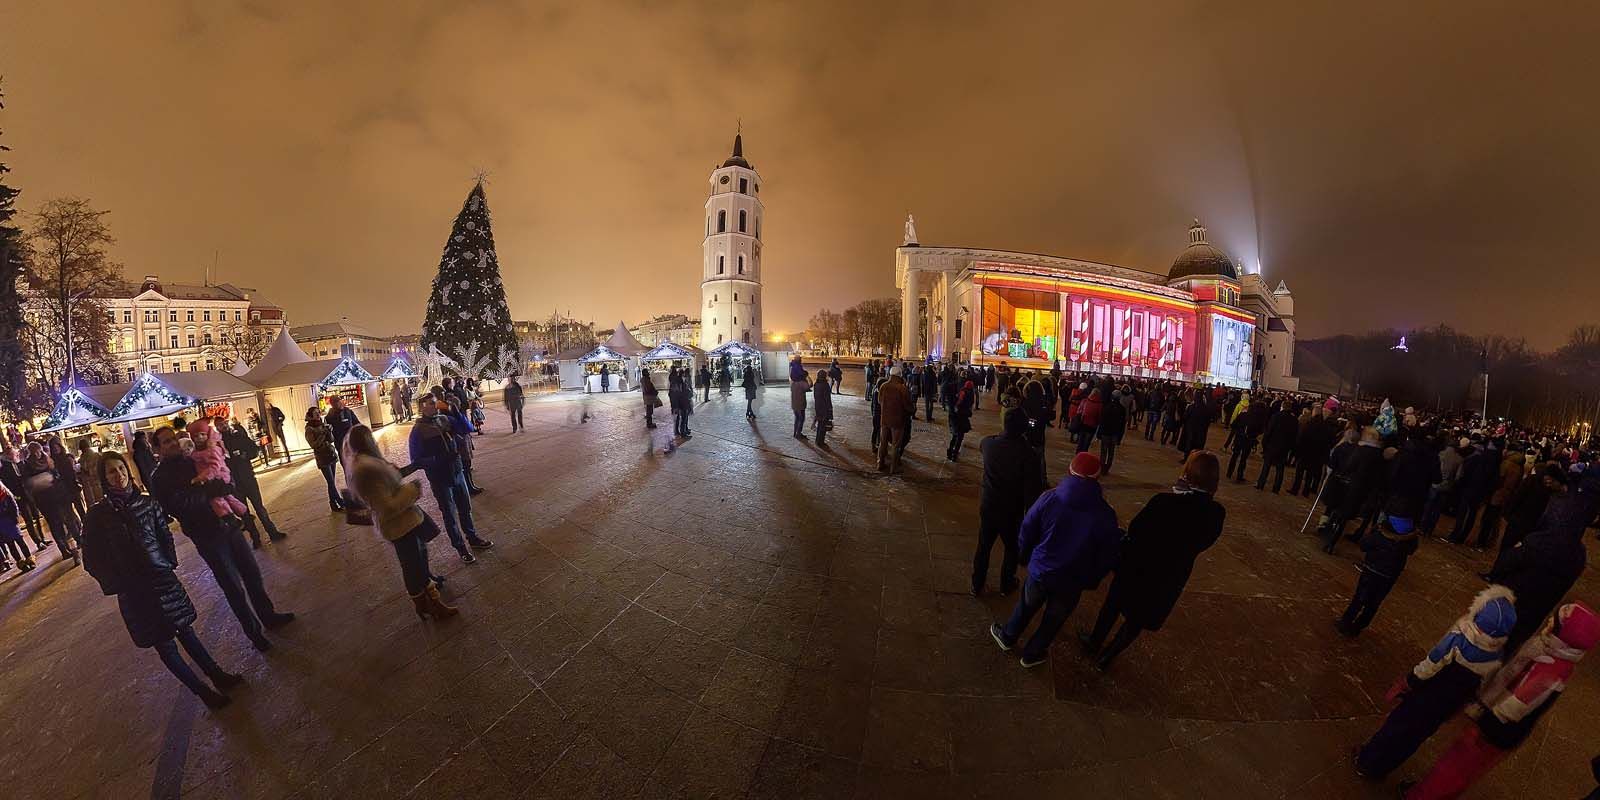 2014-12-28__20-14-00_katedros_12mm_4.0_1-4s_acr Panorama_crop_1600